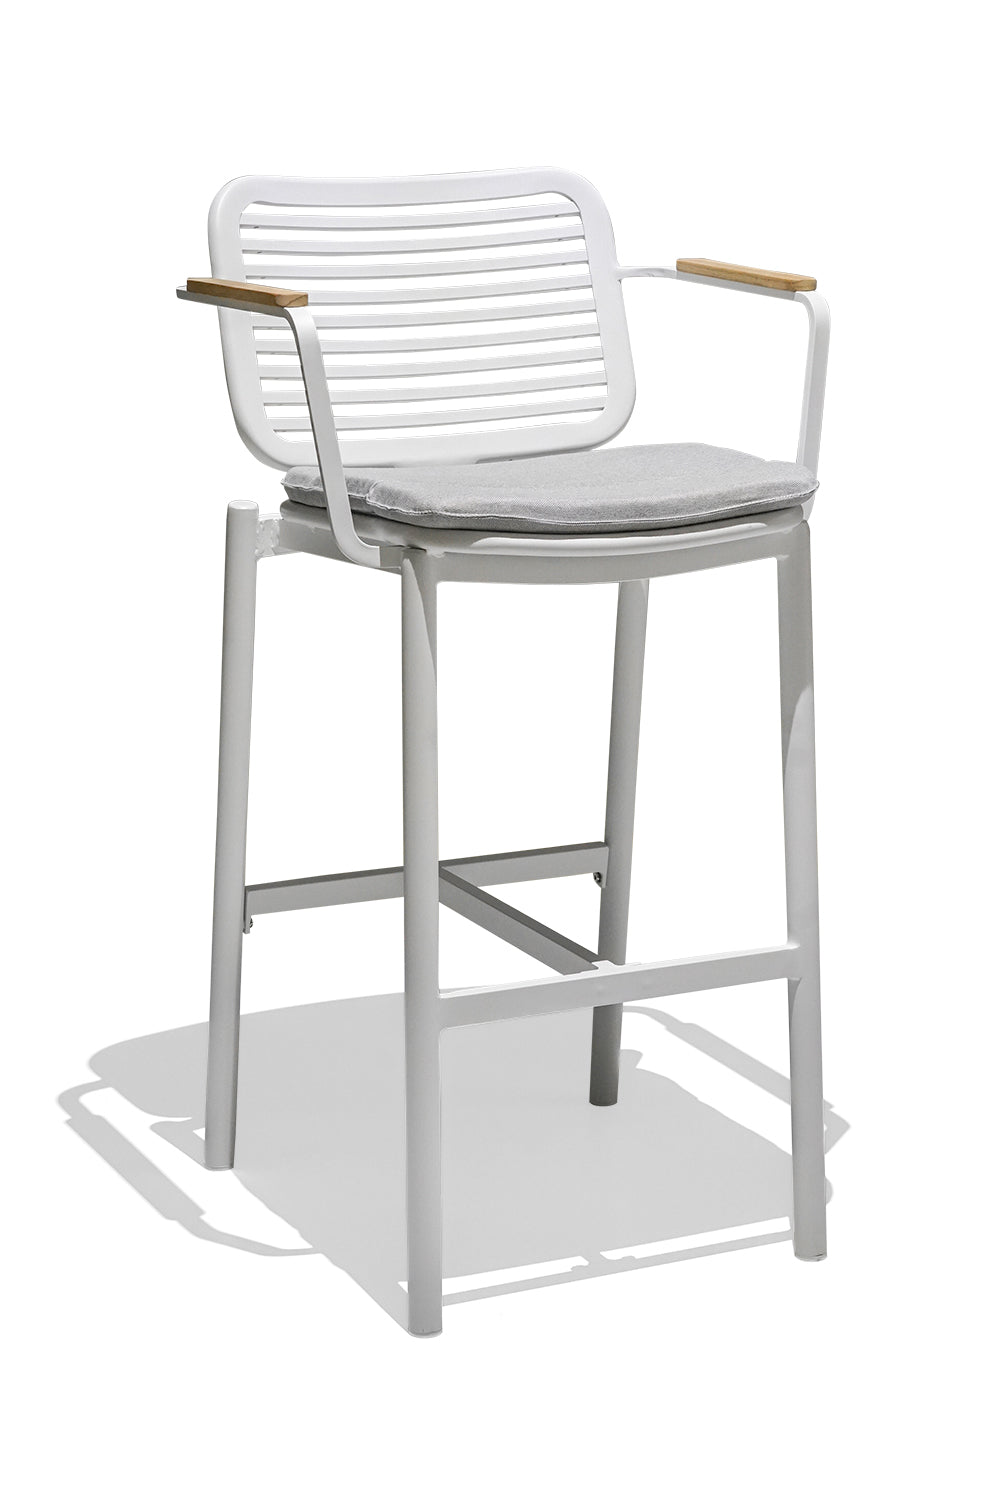 ARMONA bar stool